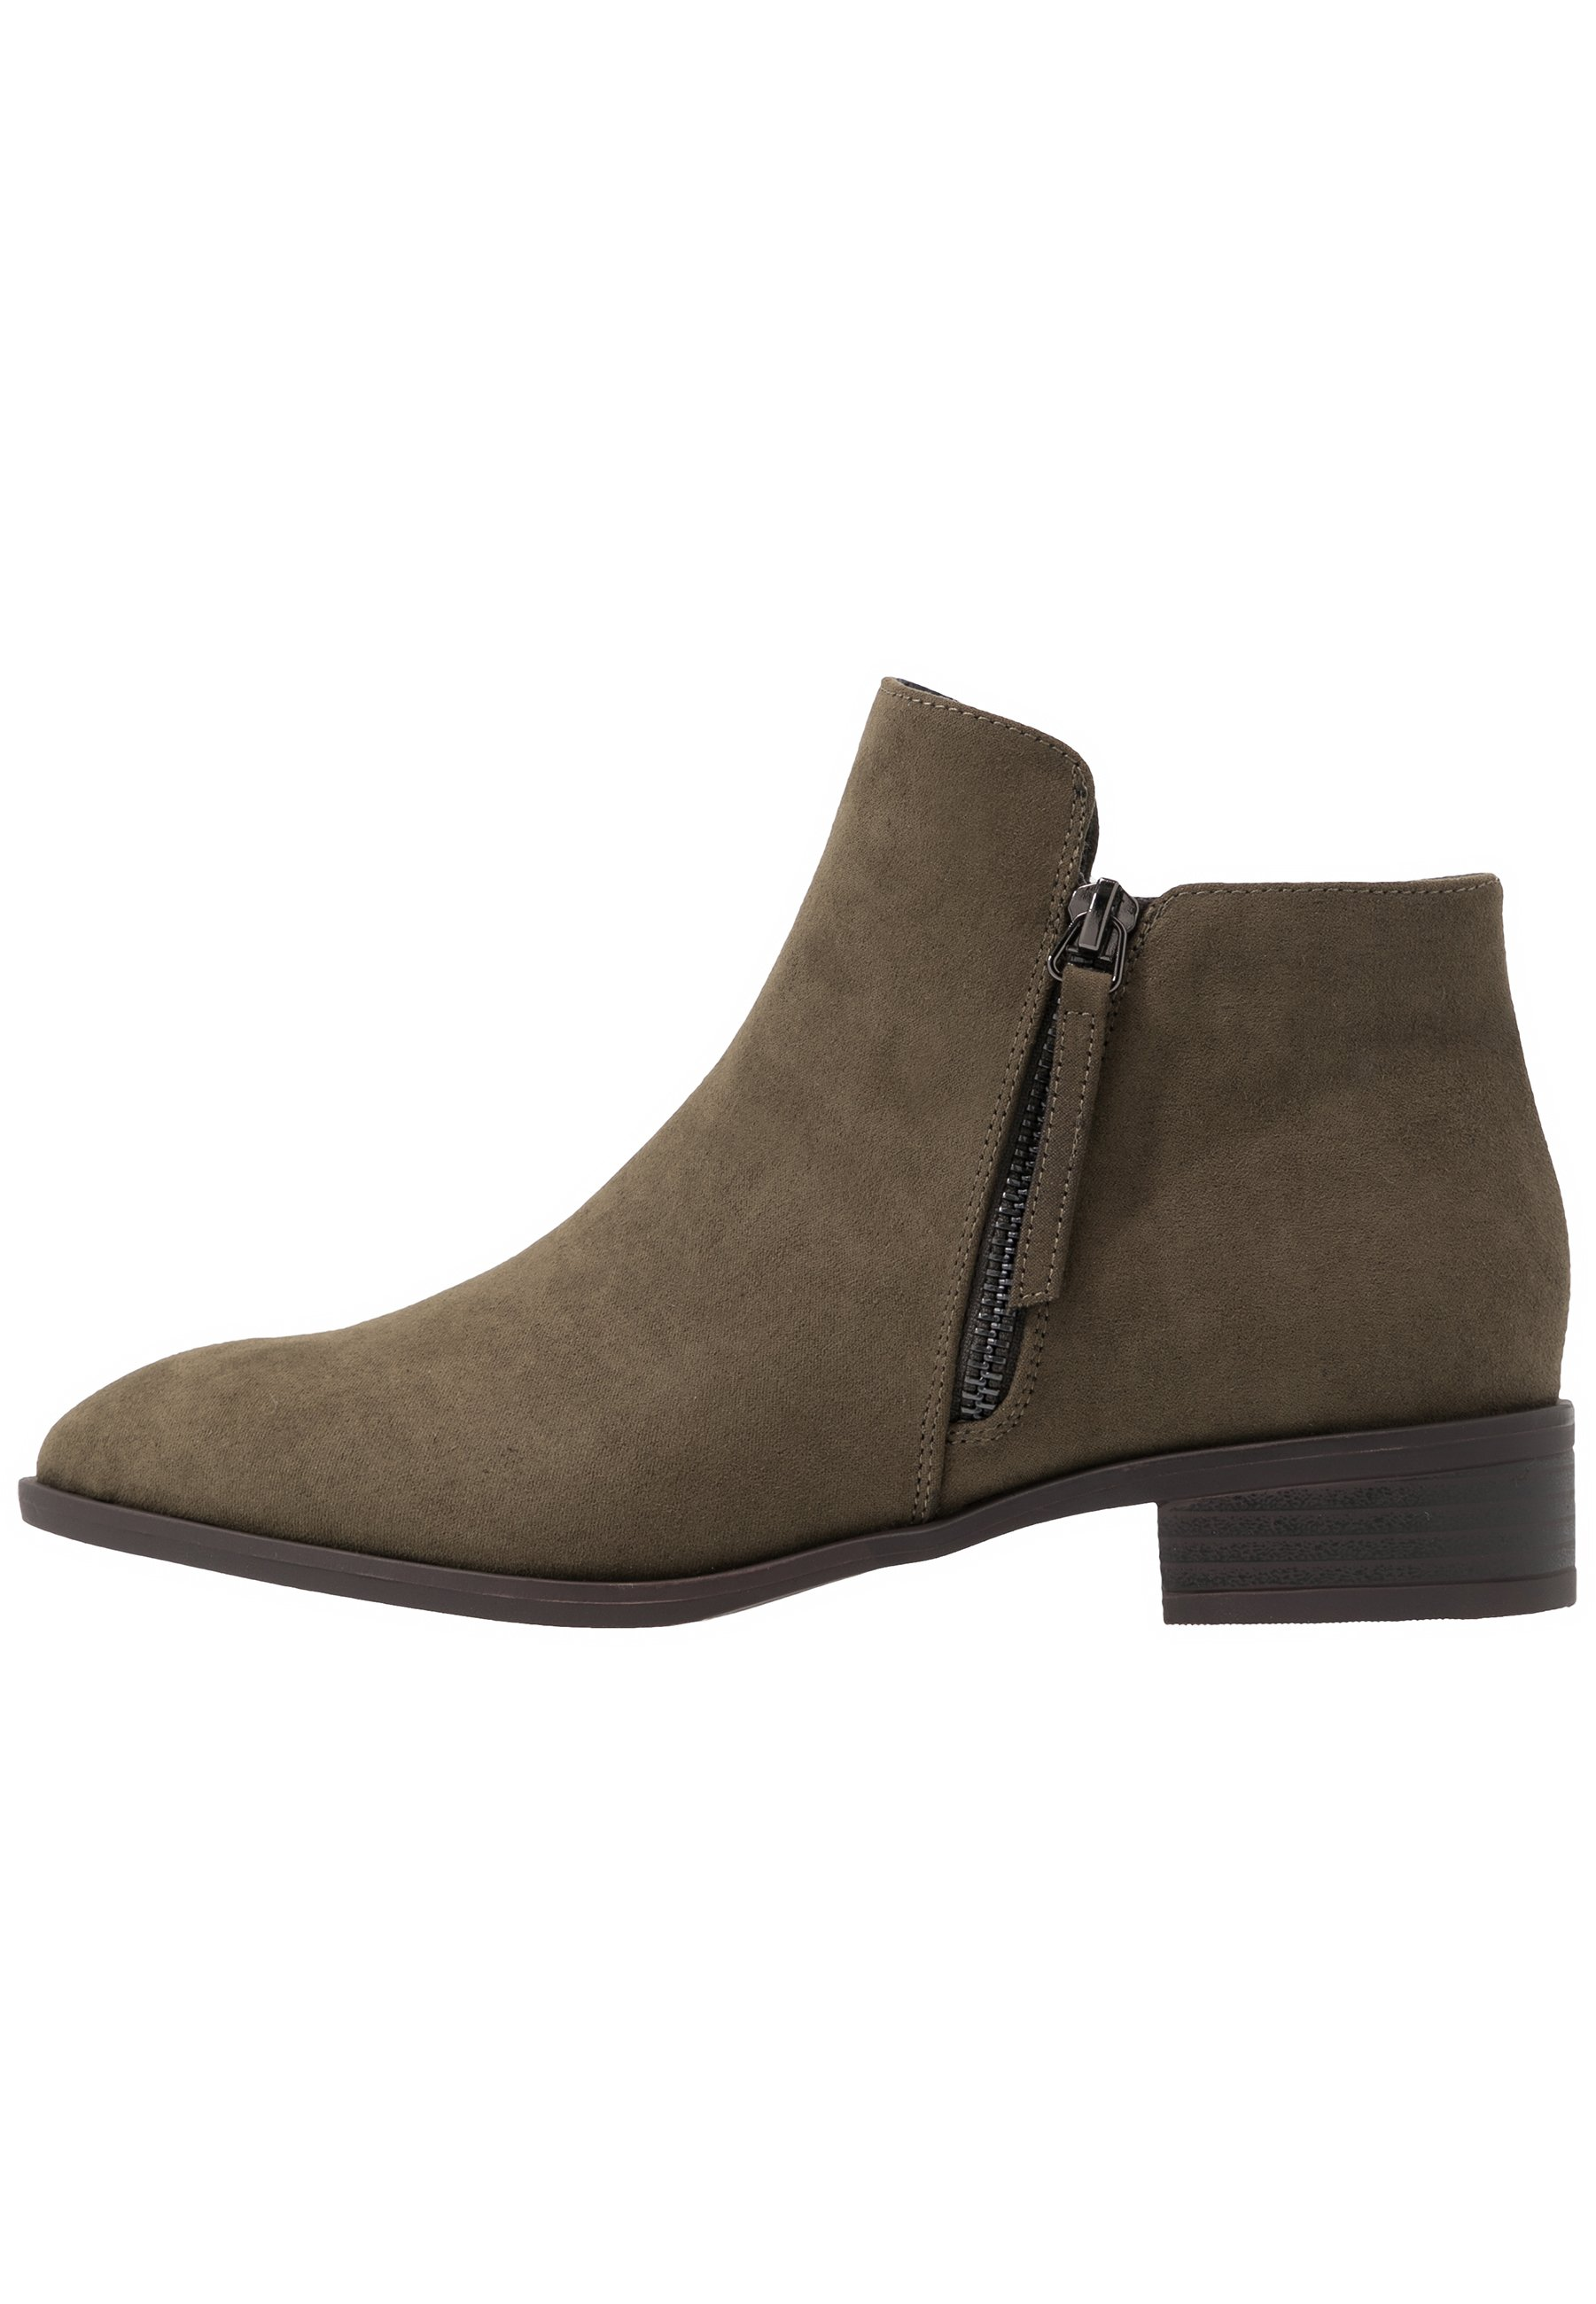 Simply Be WIDE FIT DAFFODIL - Ankle boot - khaki